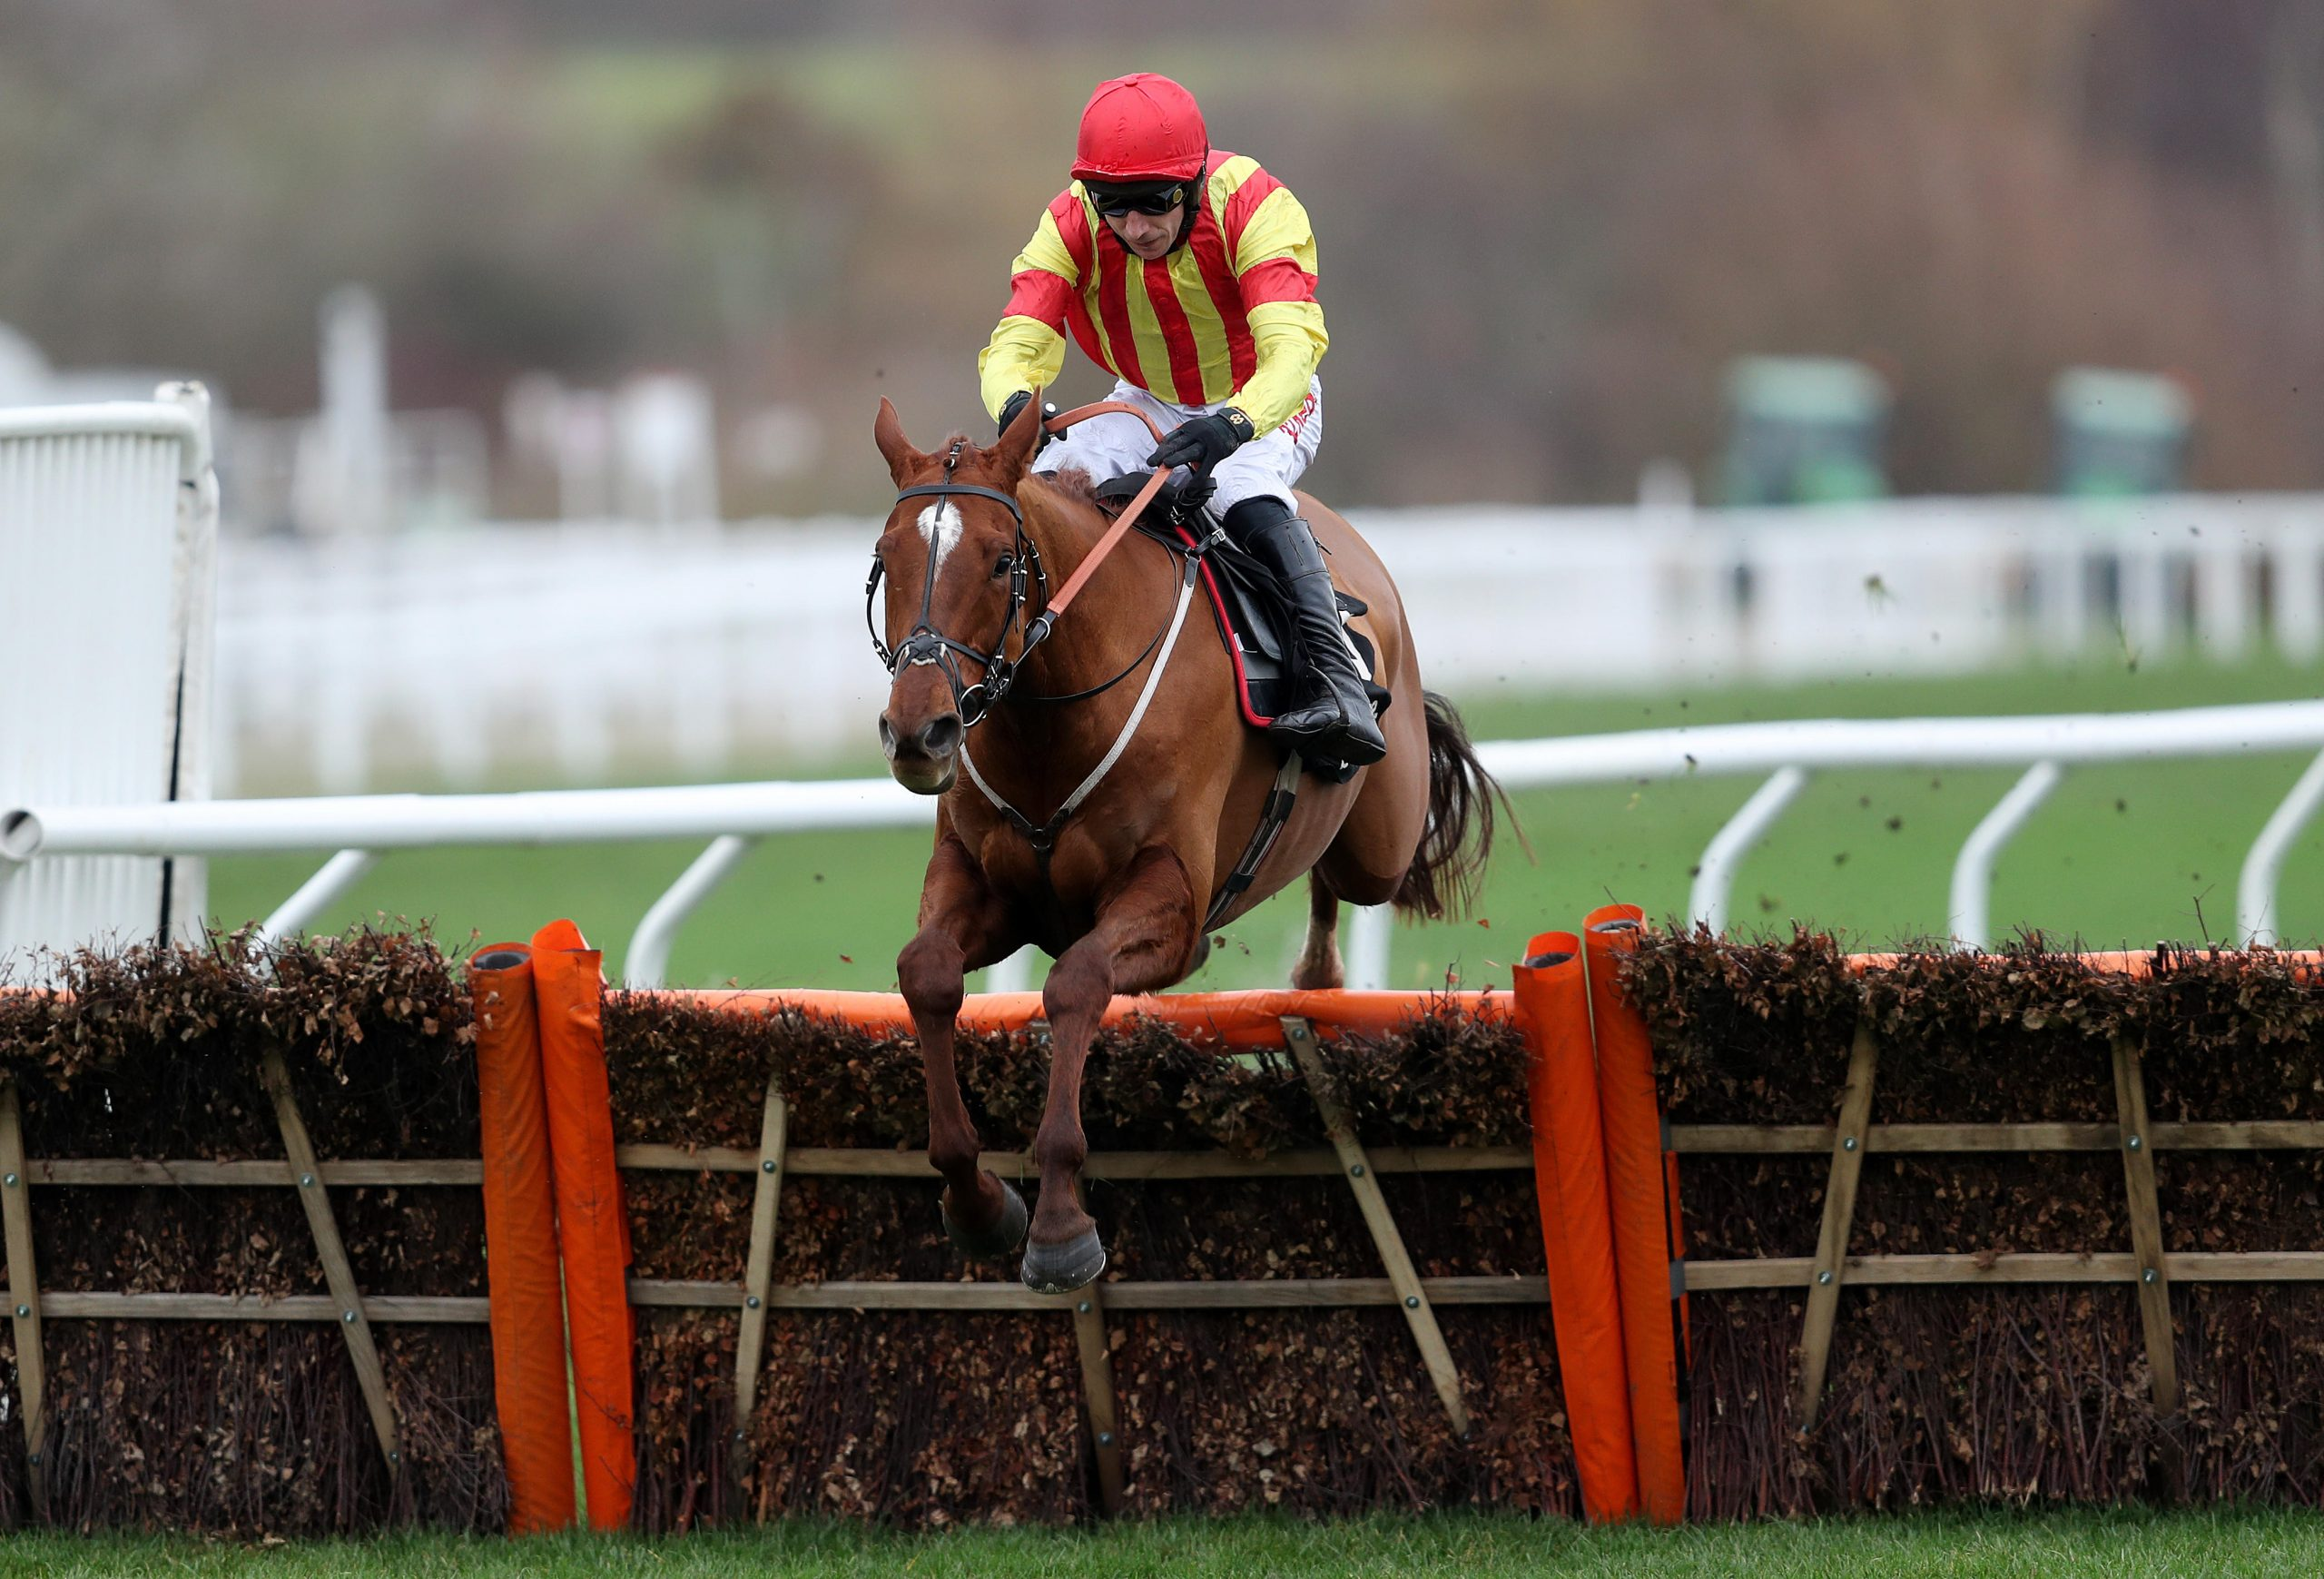 Jarveys Plate ridden by Paddy Brennan on their way to victory in the Ballymore Novices' Hurdle during the New Year Meeting at Cheltenham Racecourse.